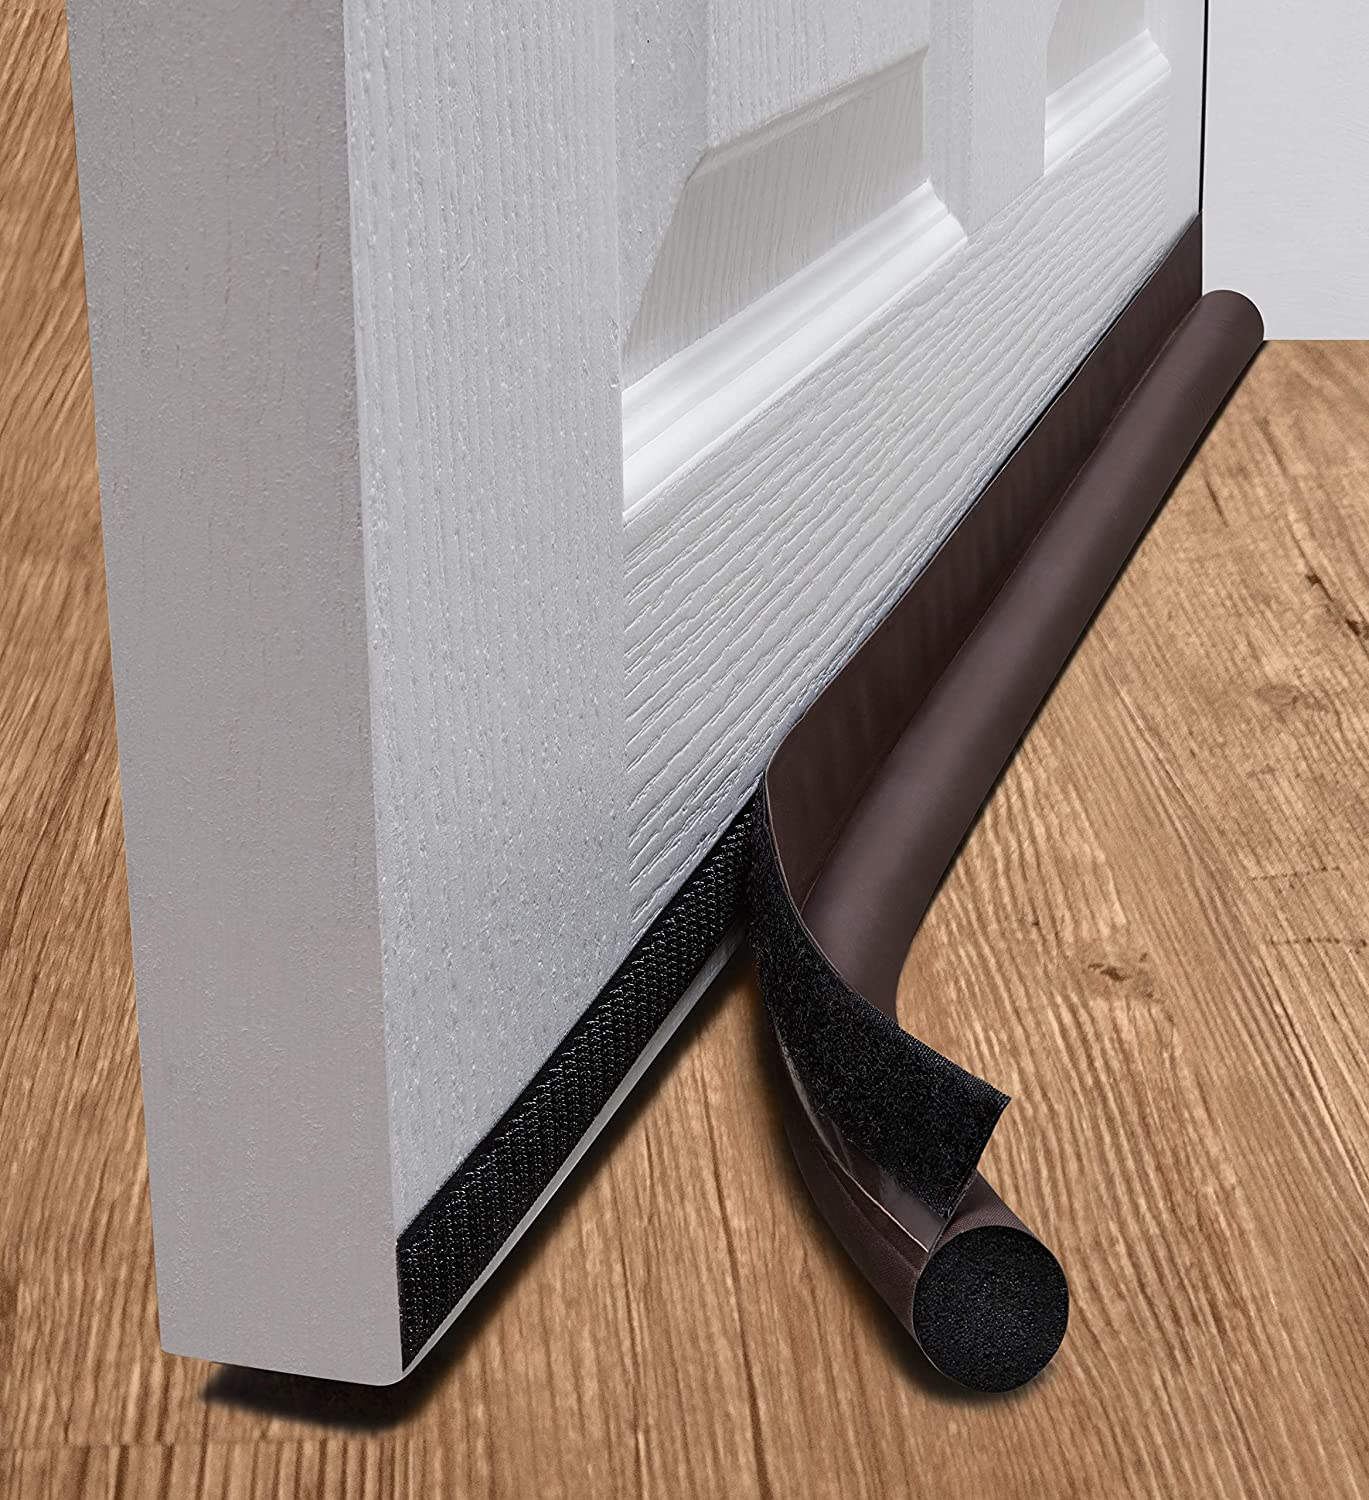 deeToolMan One Sided Self-Adhesive Under Door Draft Stopper